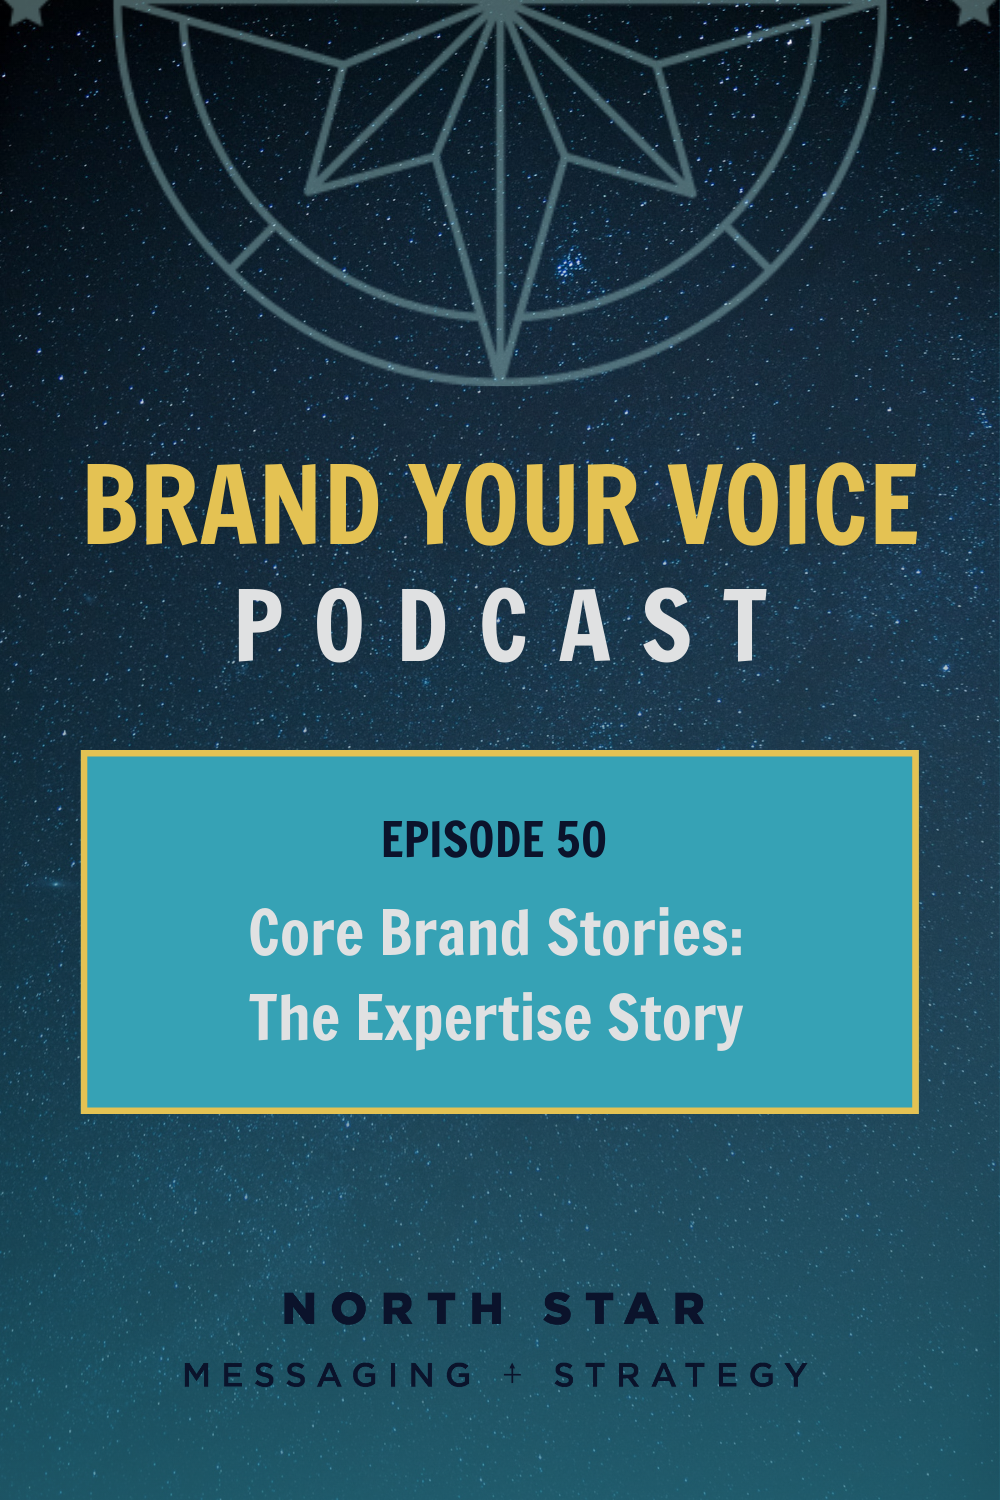 EPISODE 50: Core Brand Stories: The Expertise Story